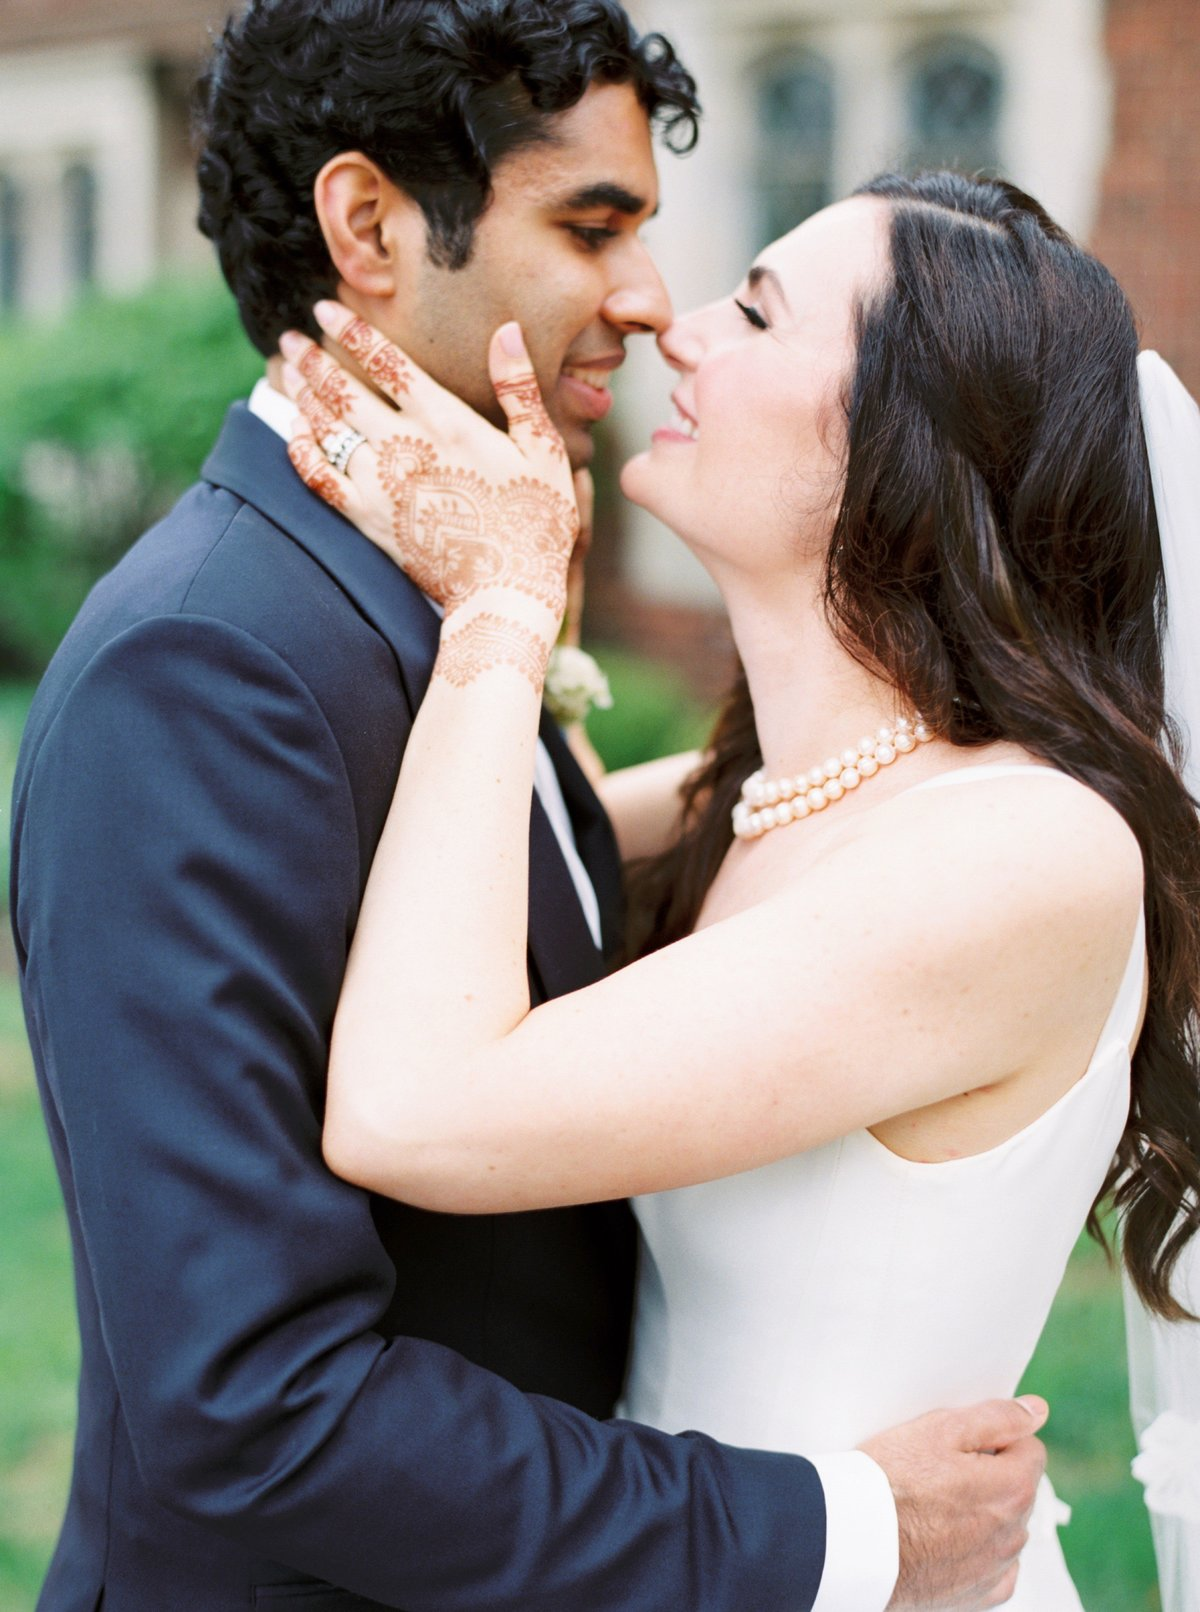 nicoleclareyphotography_hannah+akash_cincinnati_wedding_0017